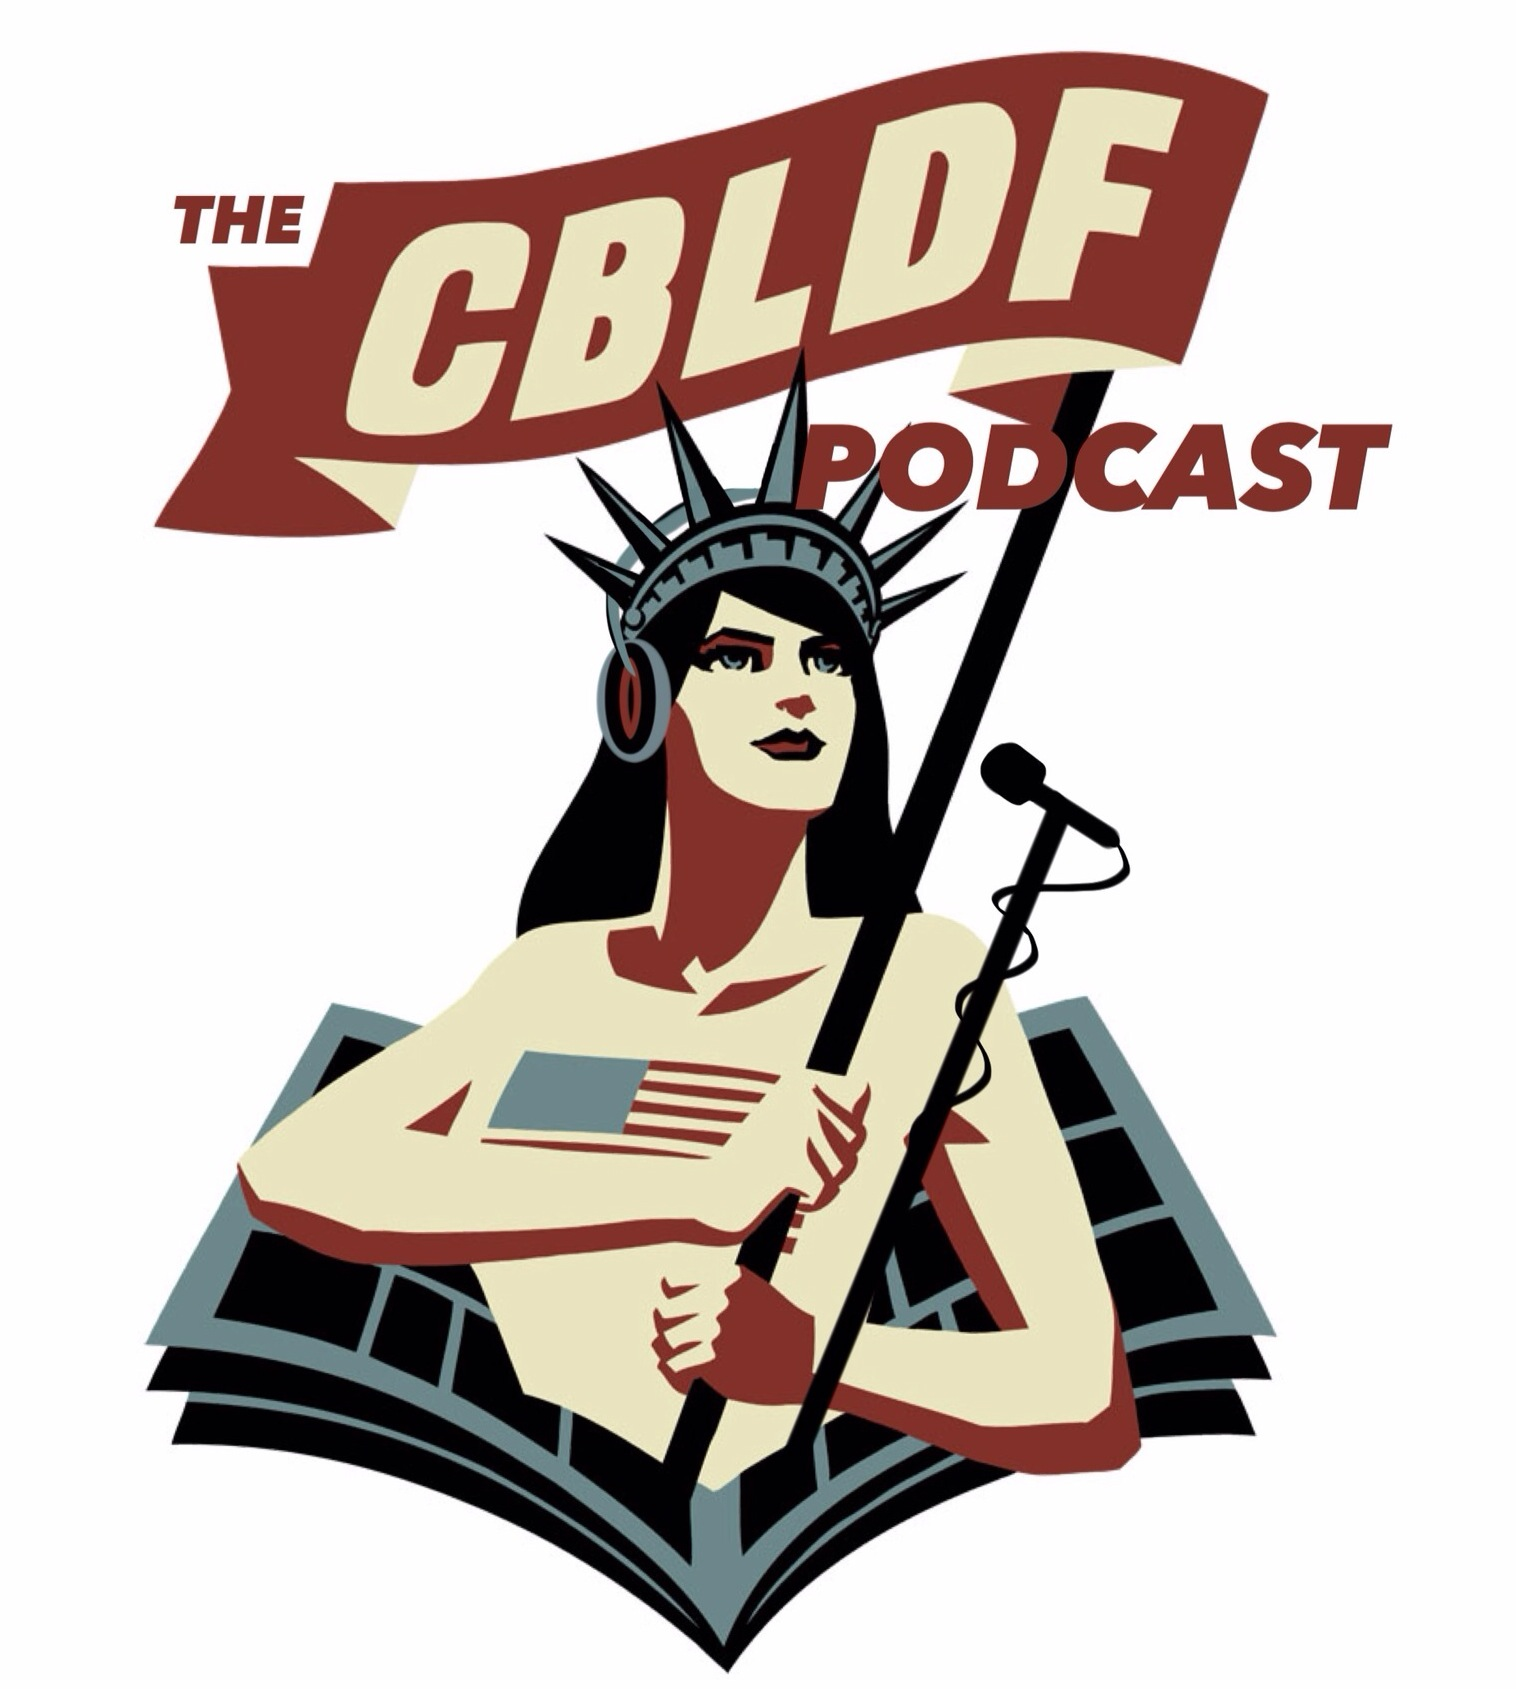 CBLDF Podcast Episode 23: ANNE ISHII of MASSIVE GOODS